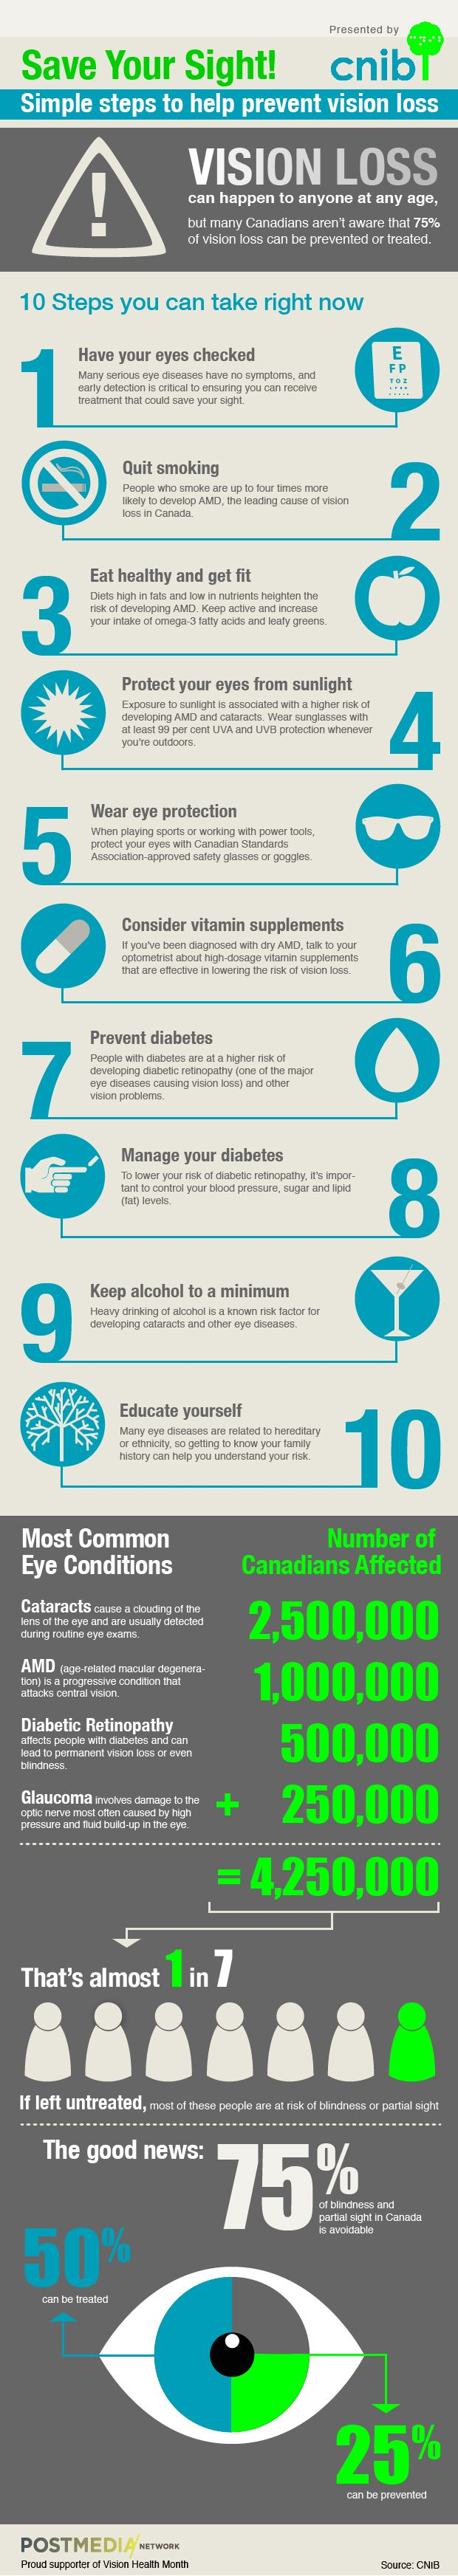 Simple Steps to help prevent vision loss